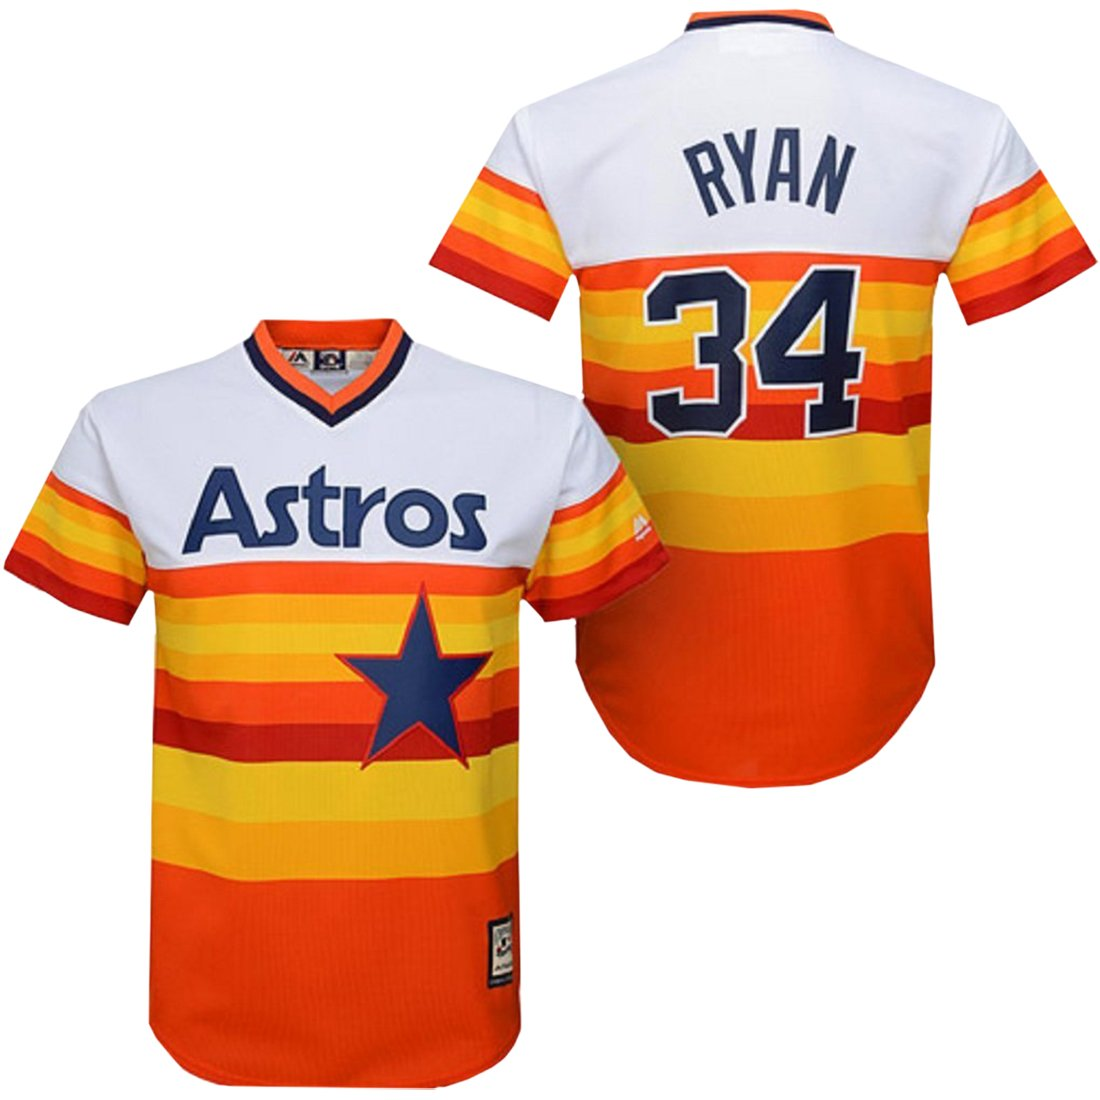 Mlb Jerseys Houston Astros 34 Nolan Ryan White Jerseys